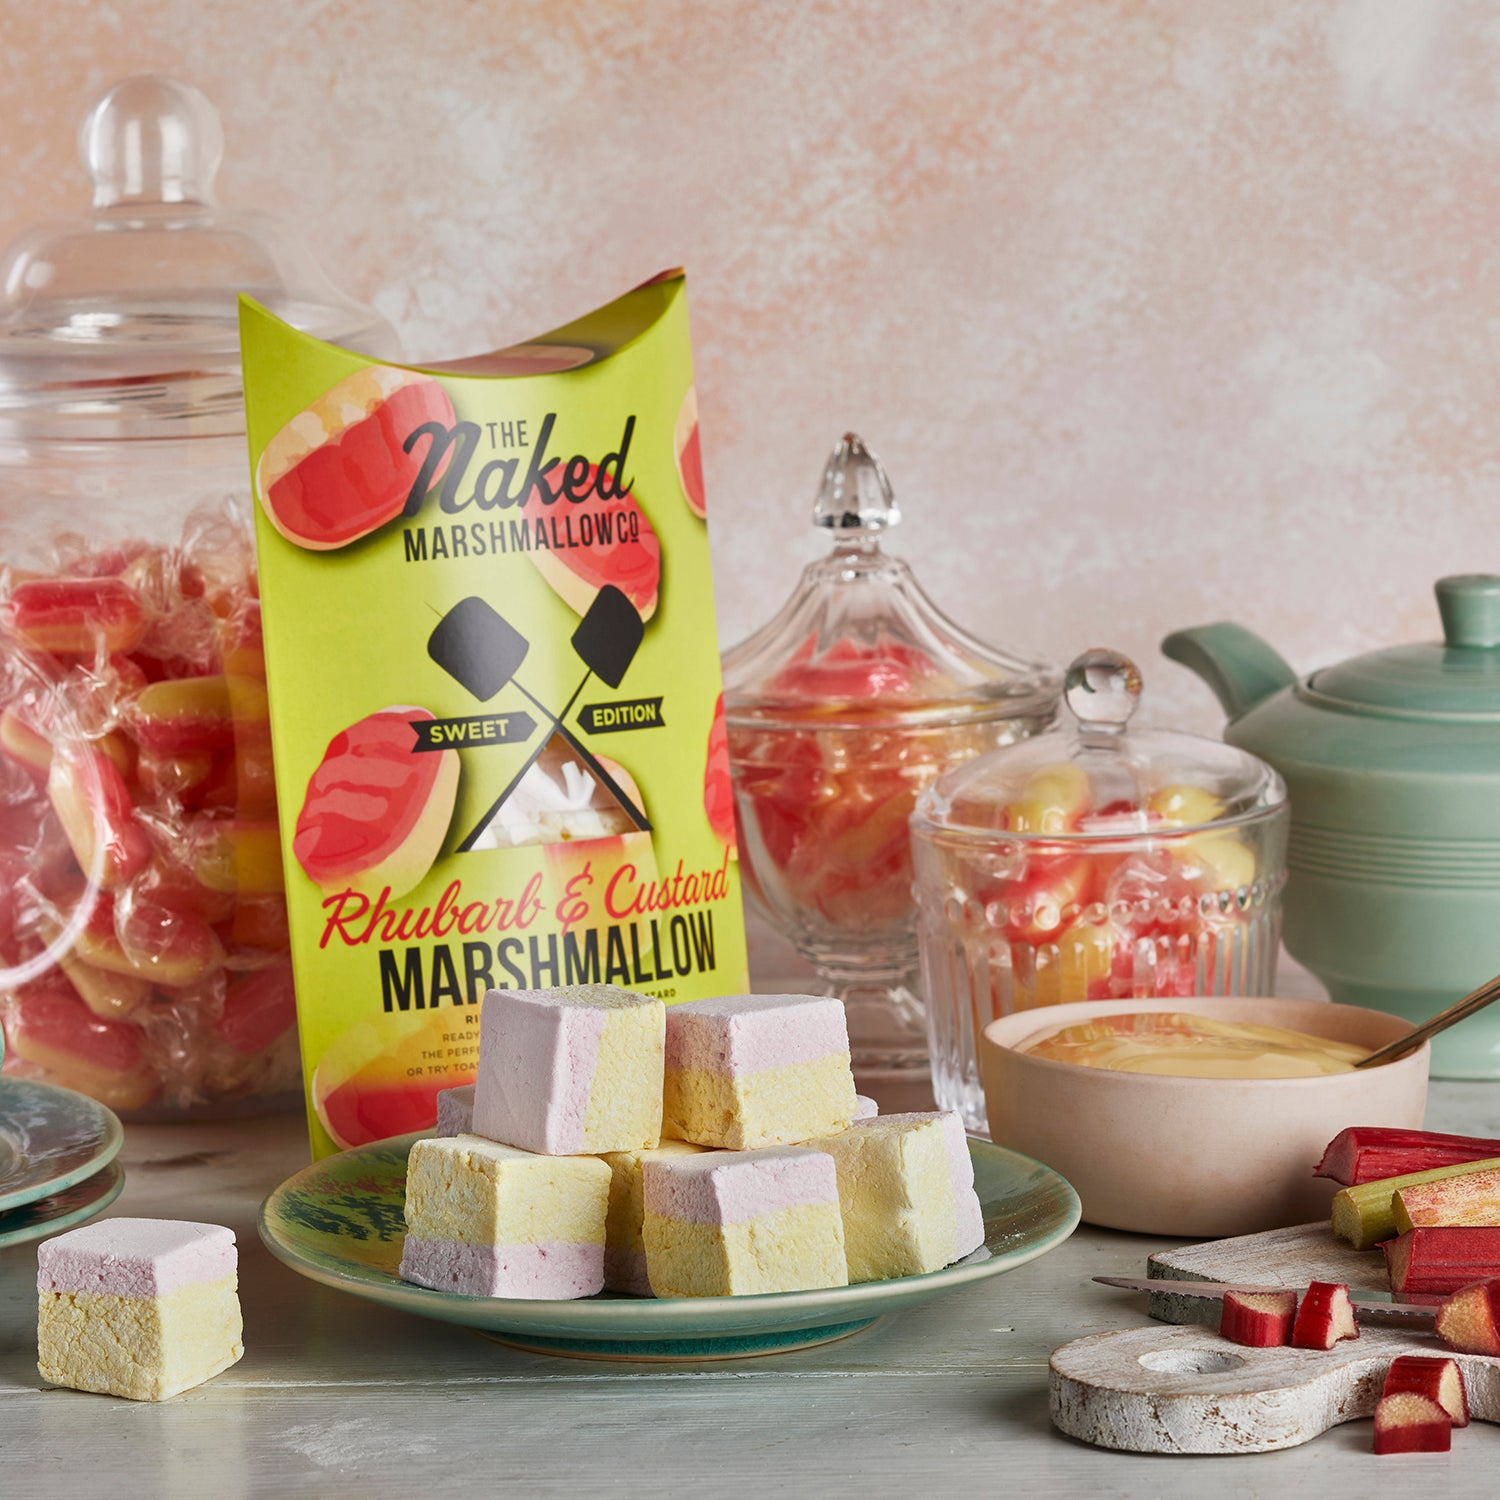 Rhubarb & Custard Gourmet Marshmallows